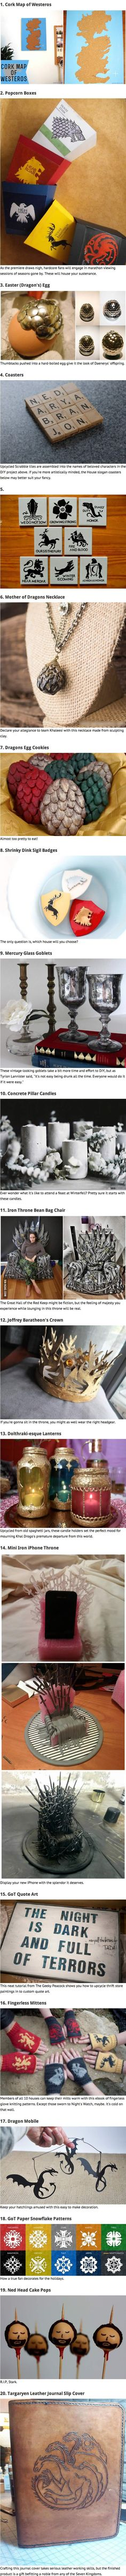 Help Game of Thrones Fans Survive The Winter